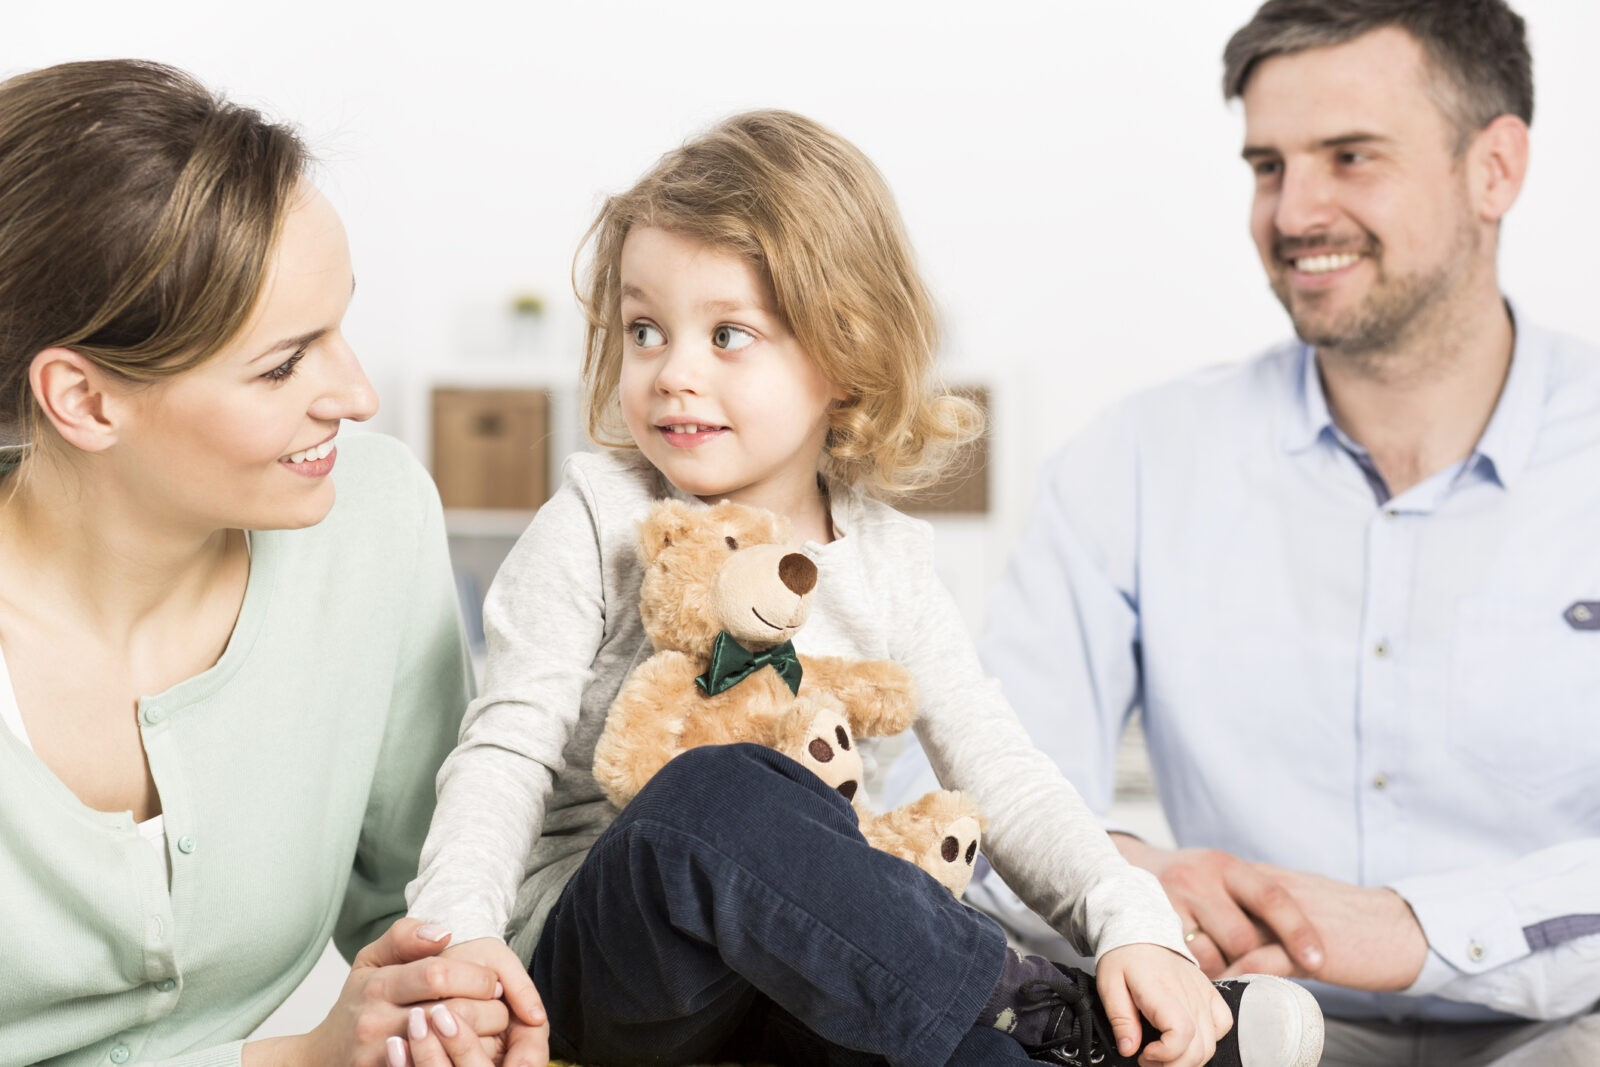 Child Support Modification in Arizona